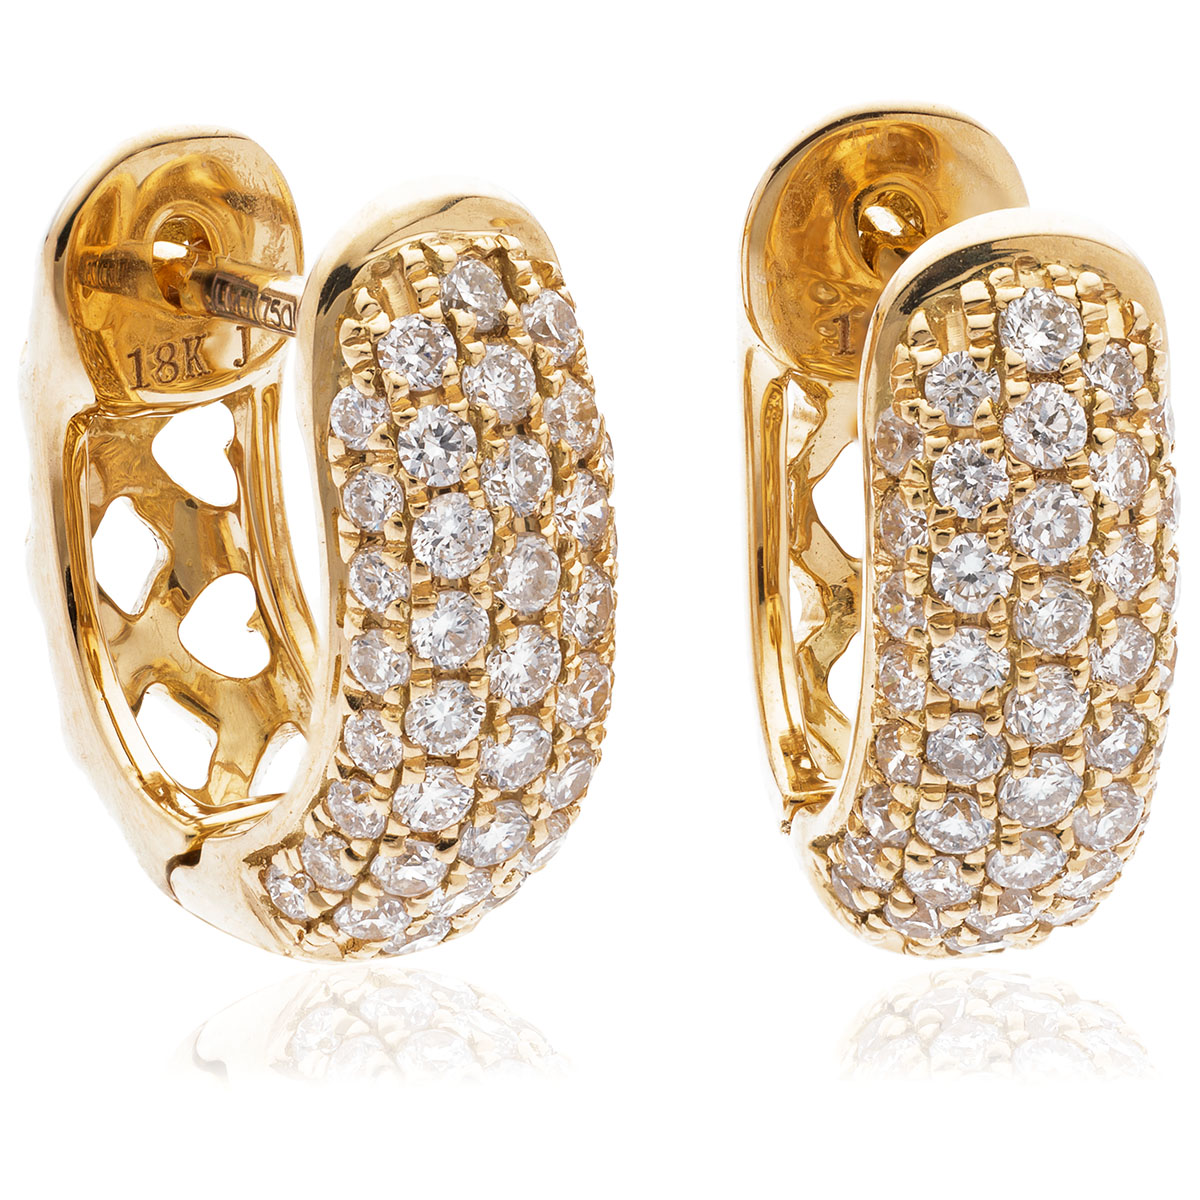 Small 5 Row Pave Diamond Hoops Earrings